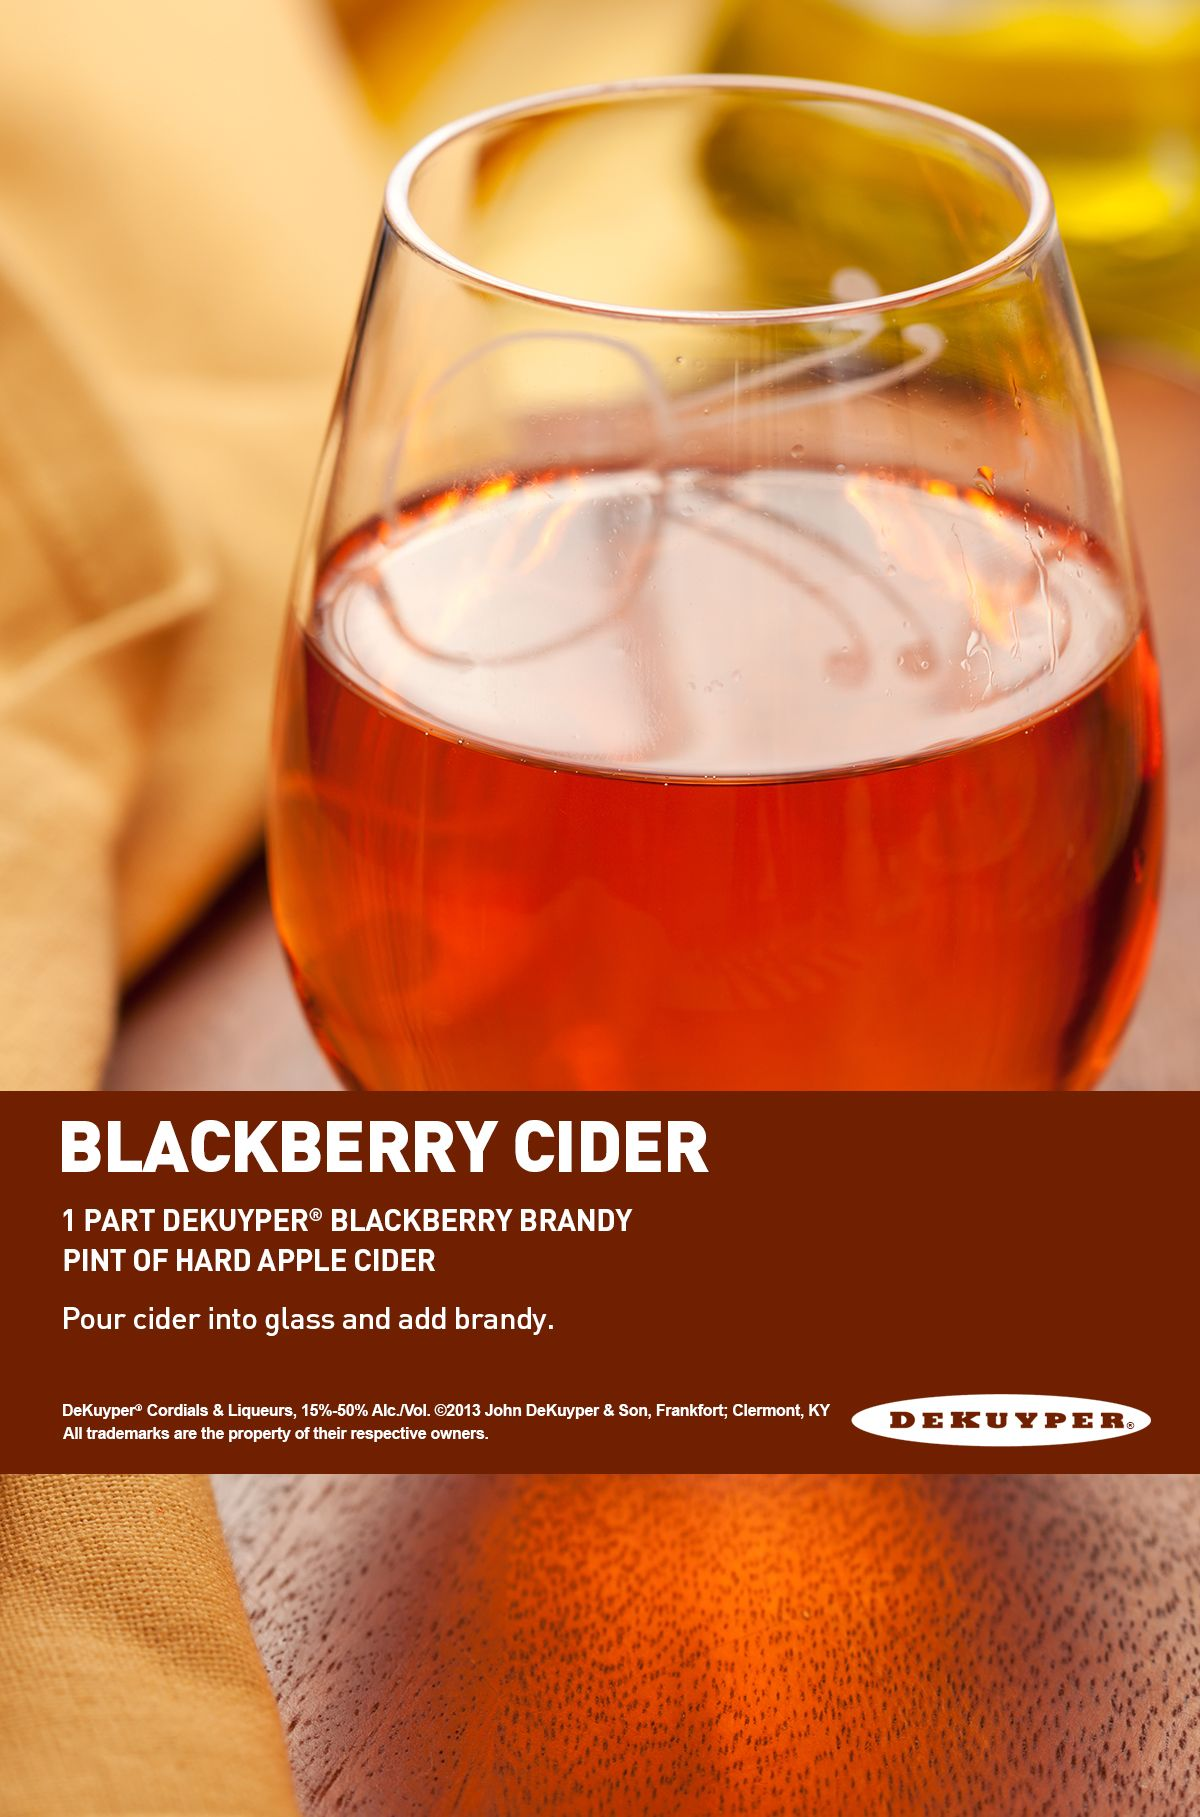 Blackberry Cider Perfect For Those Chilly Evenings Cocktail Recipe Winter Fall Cider Cider Drinks Cider Drink Recipes Cider